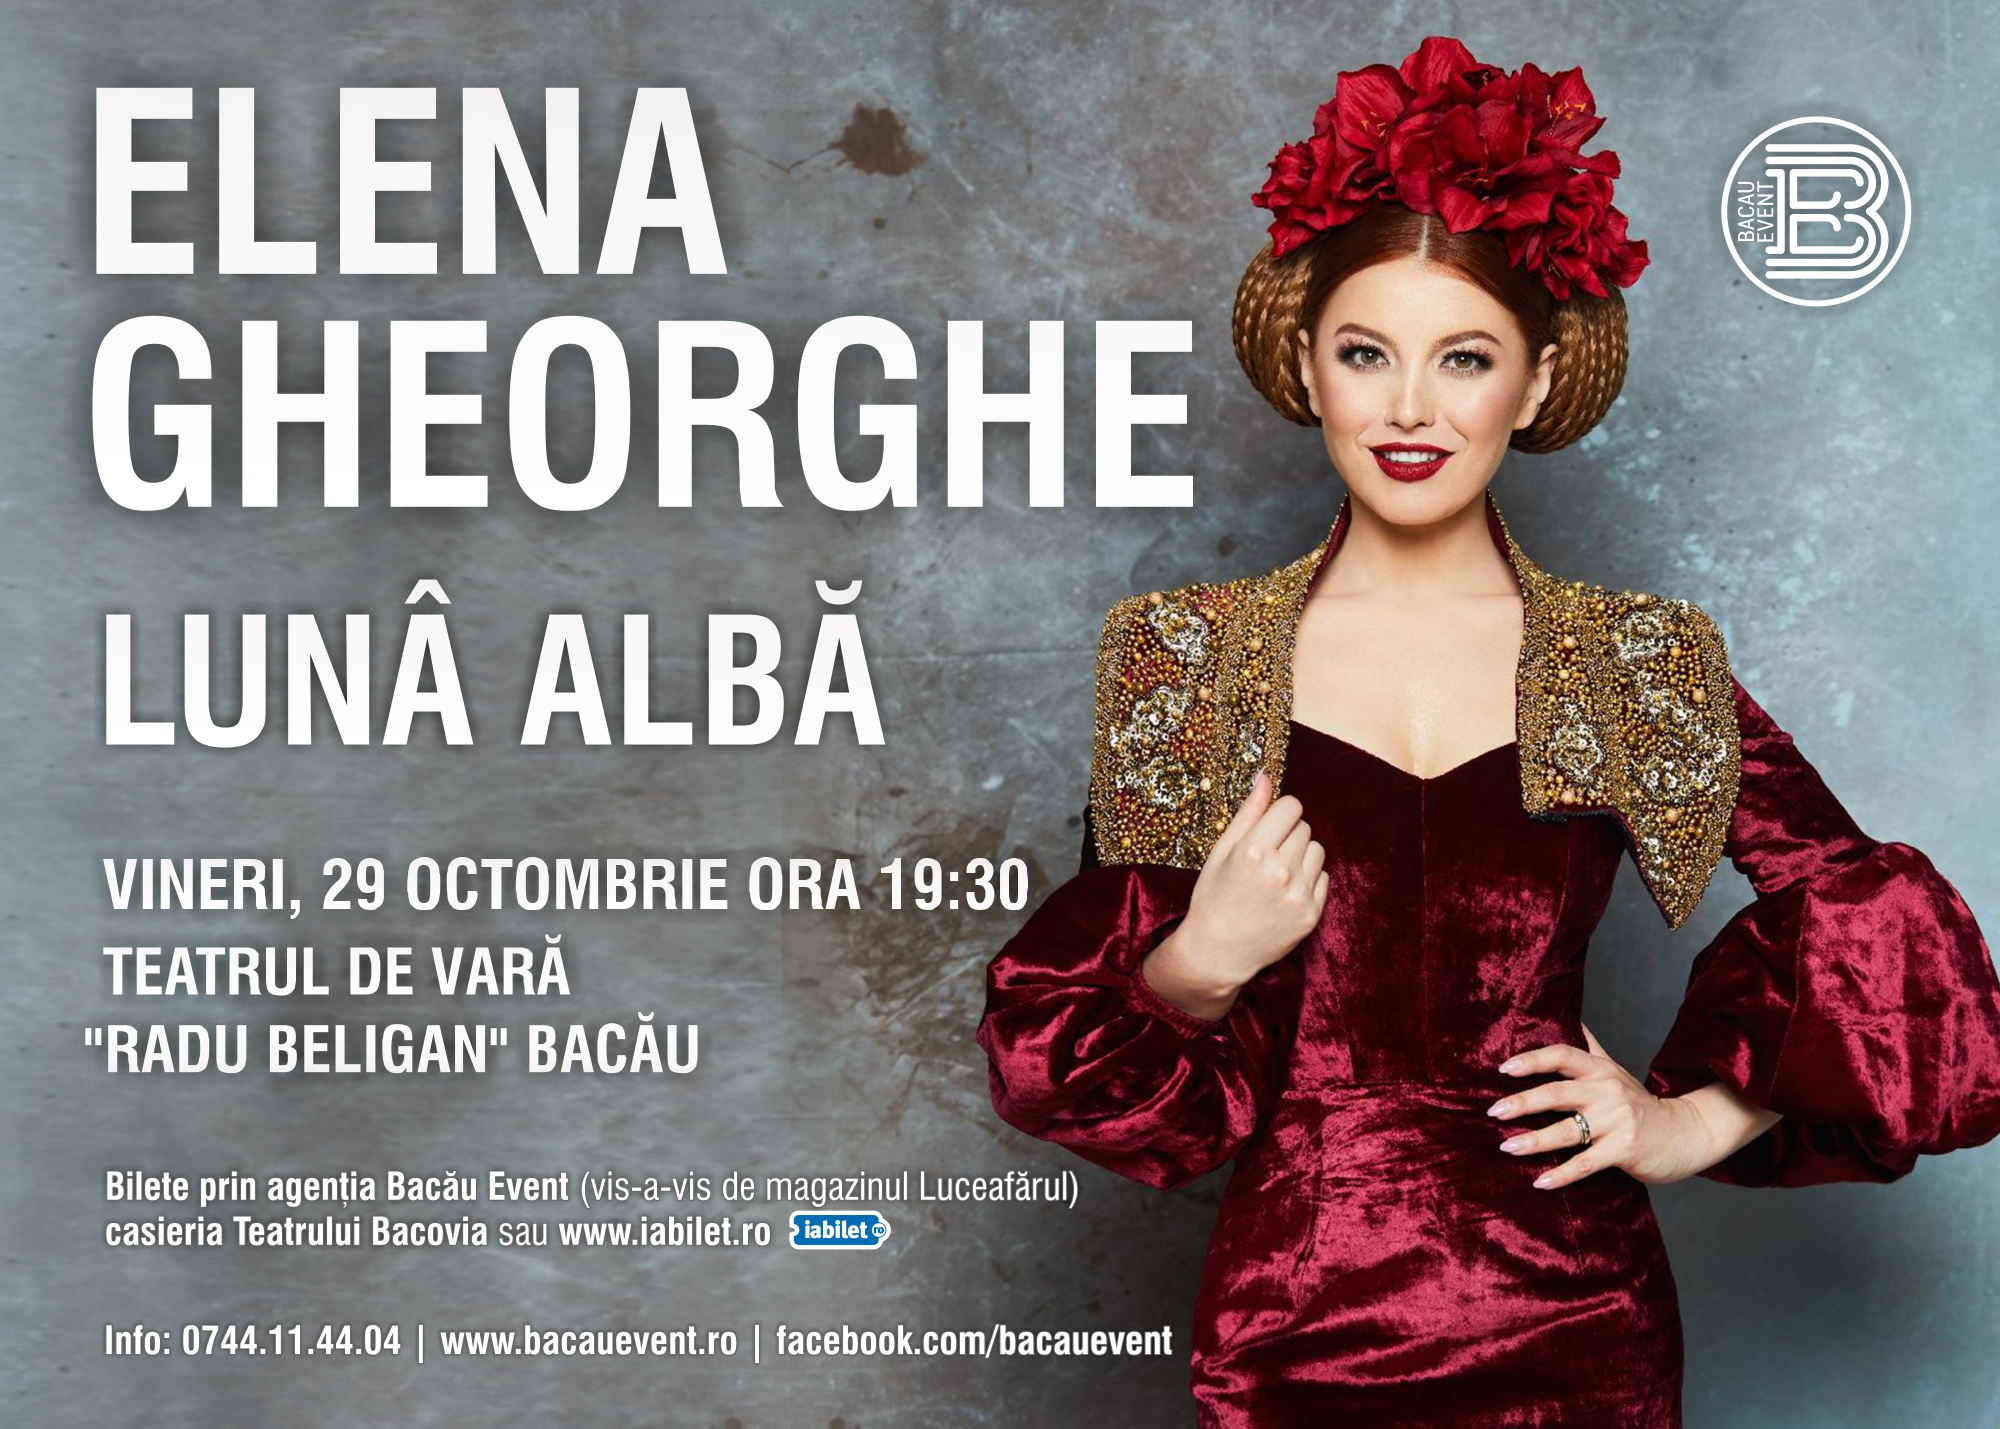 Elena Gheorghe - 29 Octombrie